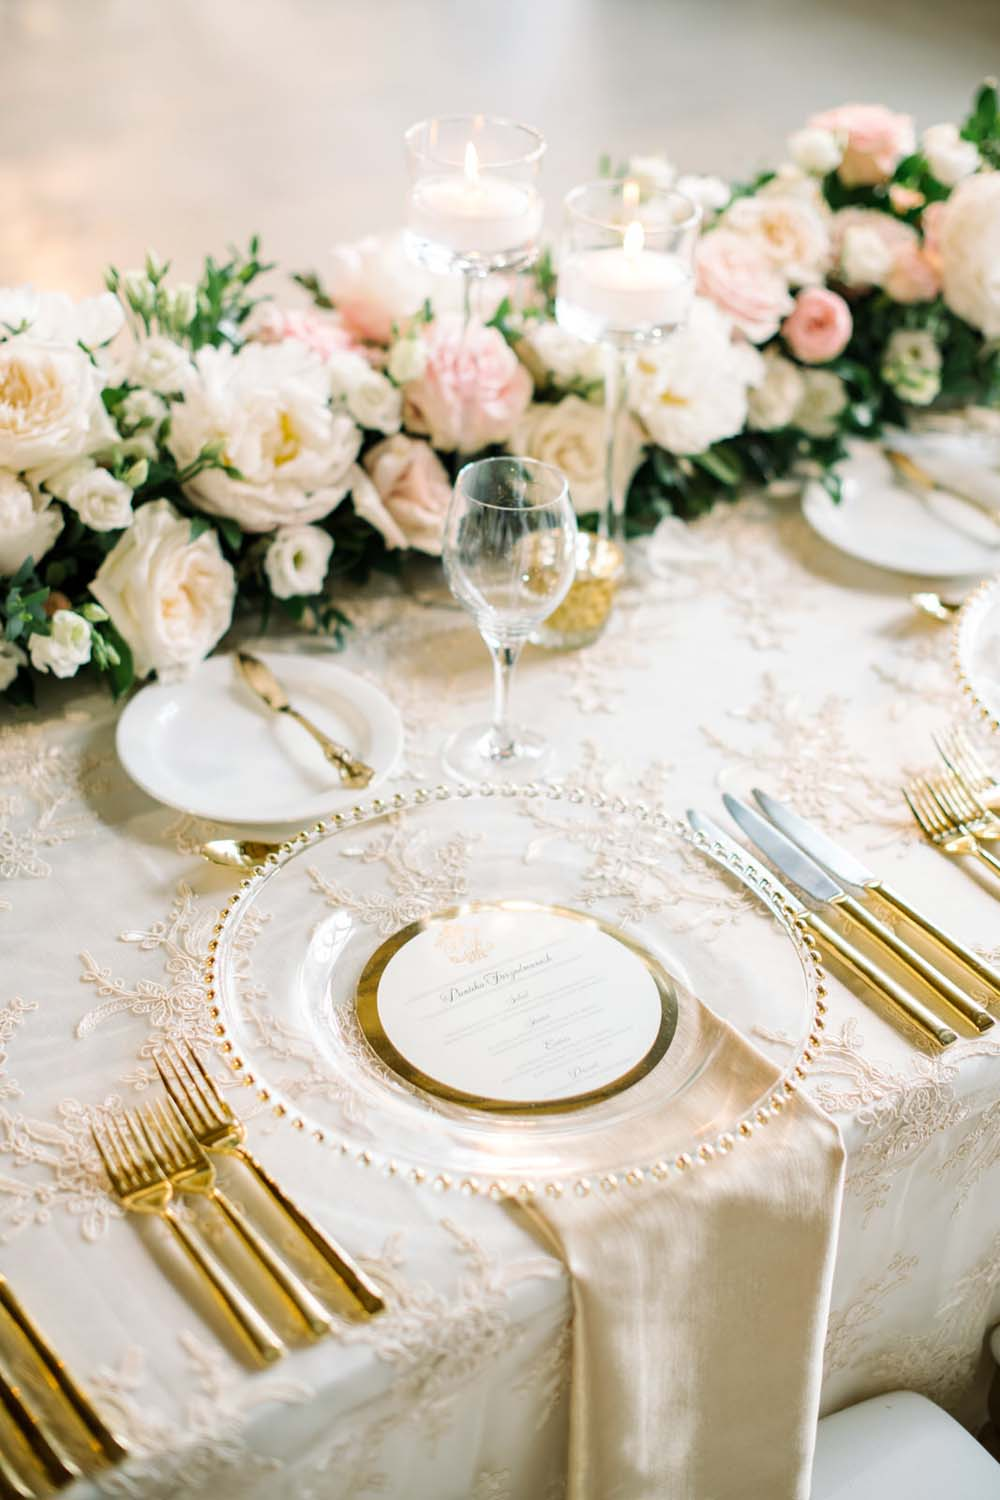 A Regal Fairytale Wedding in Banff, Alberta - Place Setting